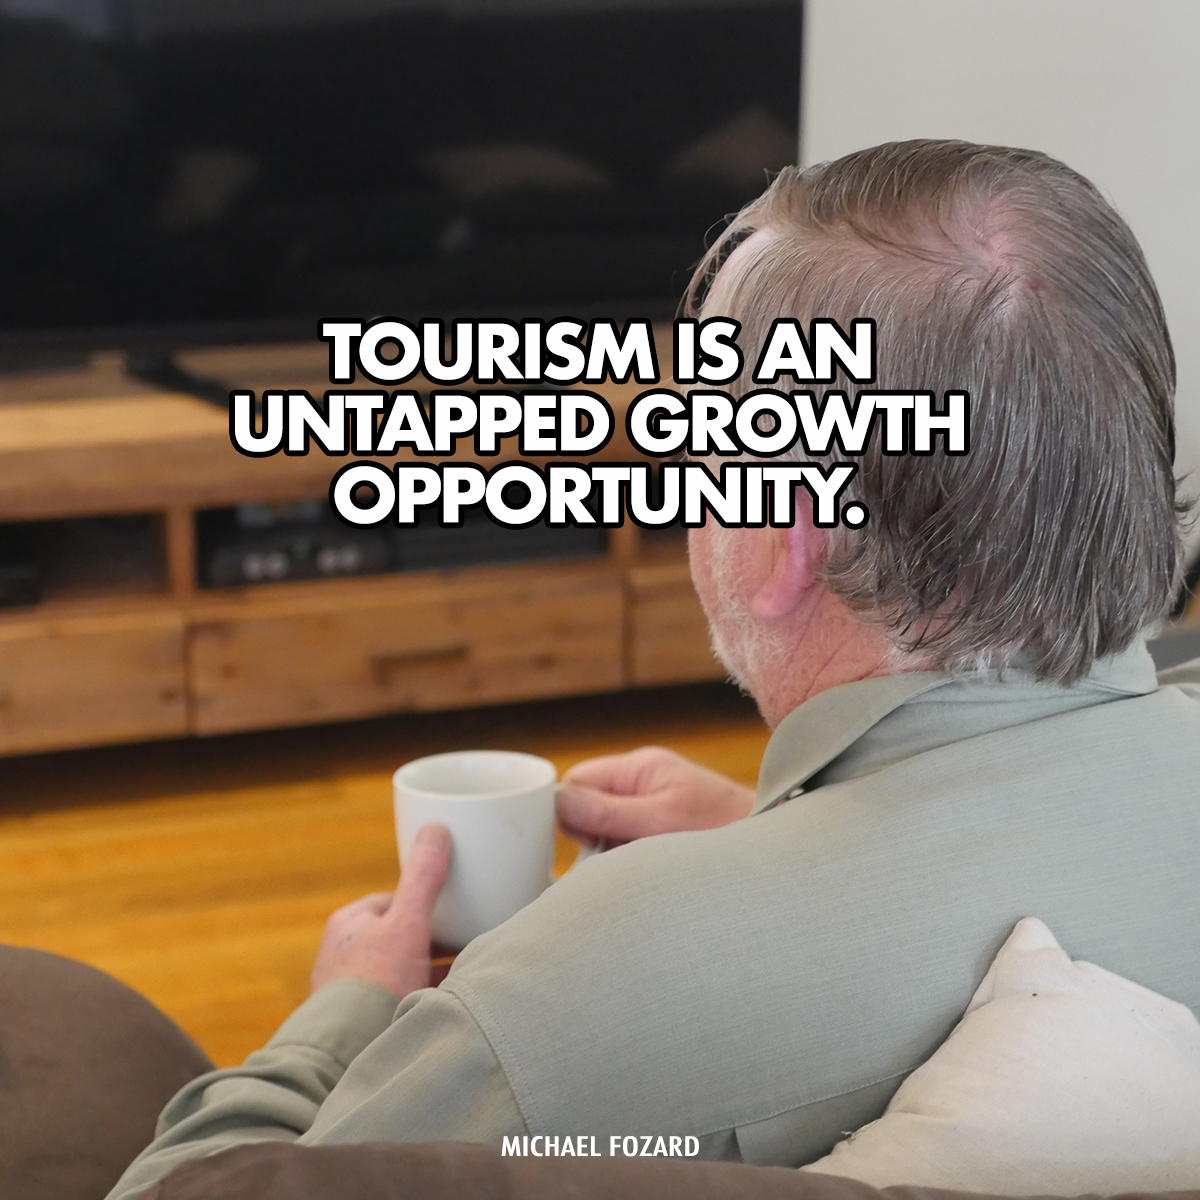 tourism-is-an-untapped.jpg